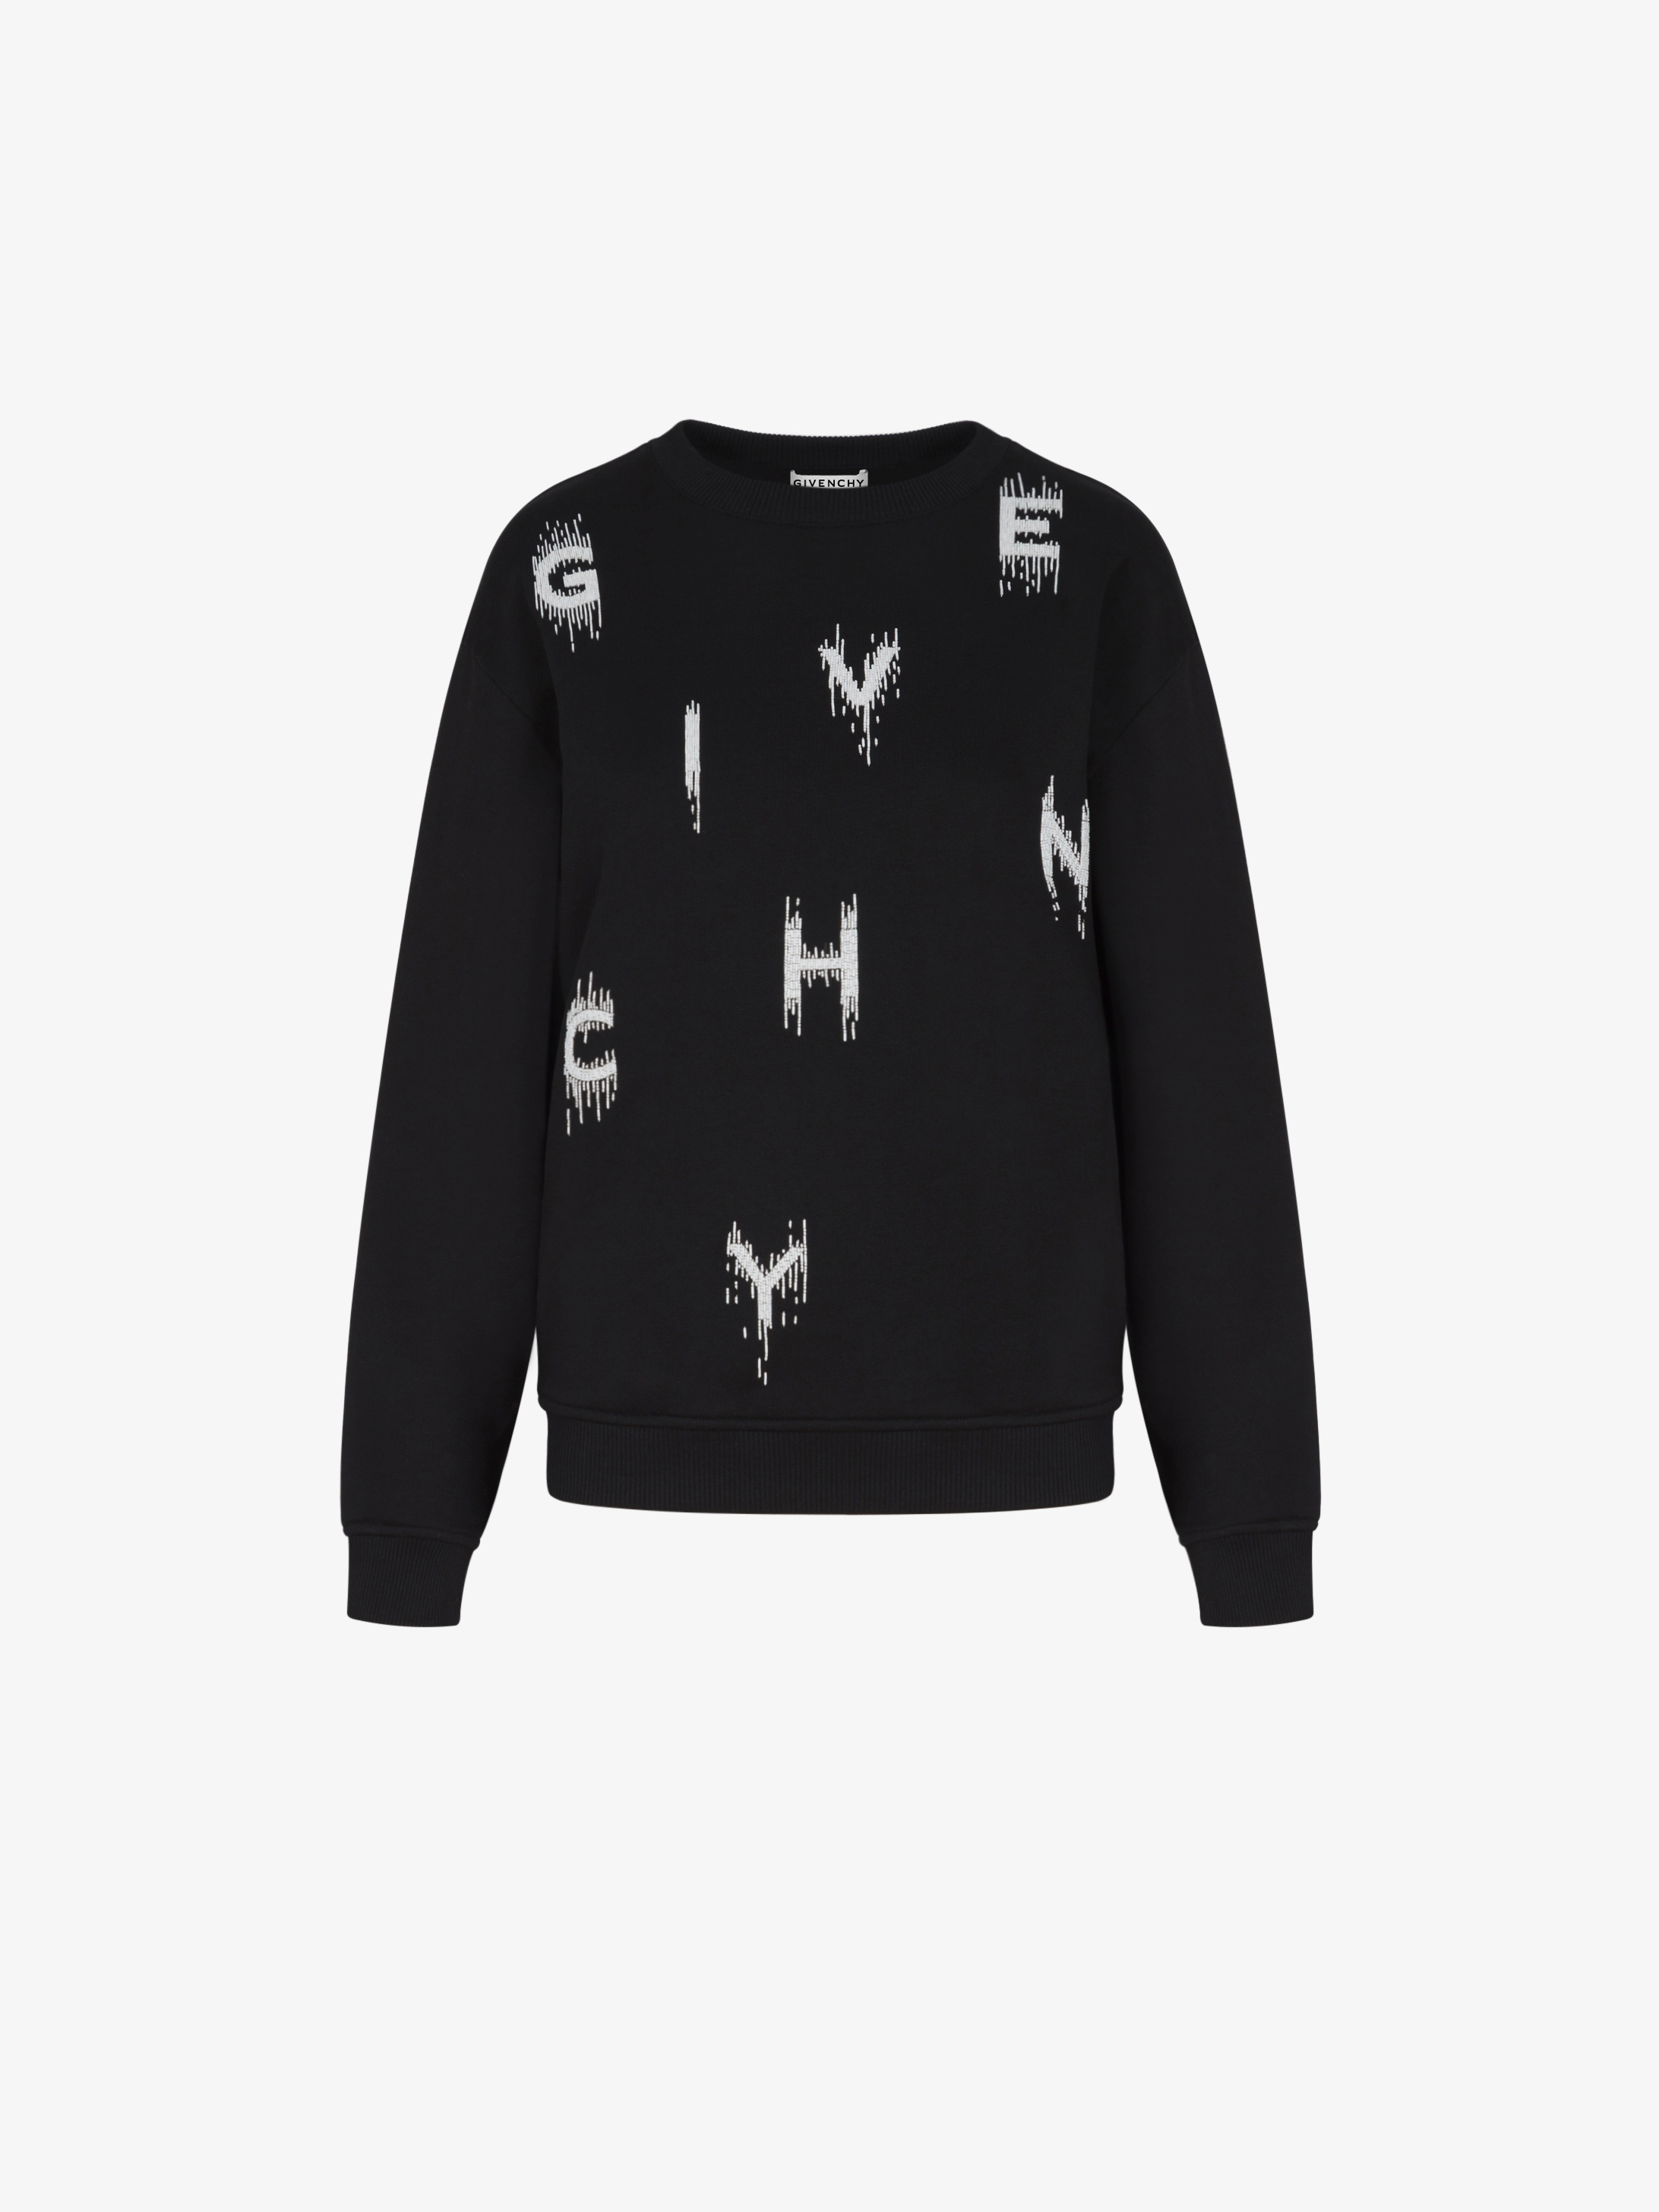 GIVENCHY pearls embroidered sweatshirt